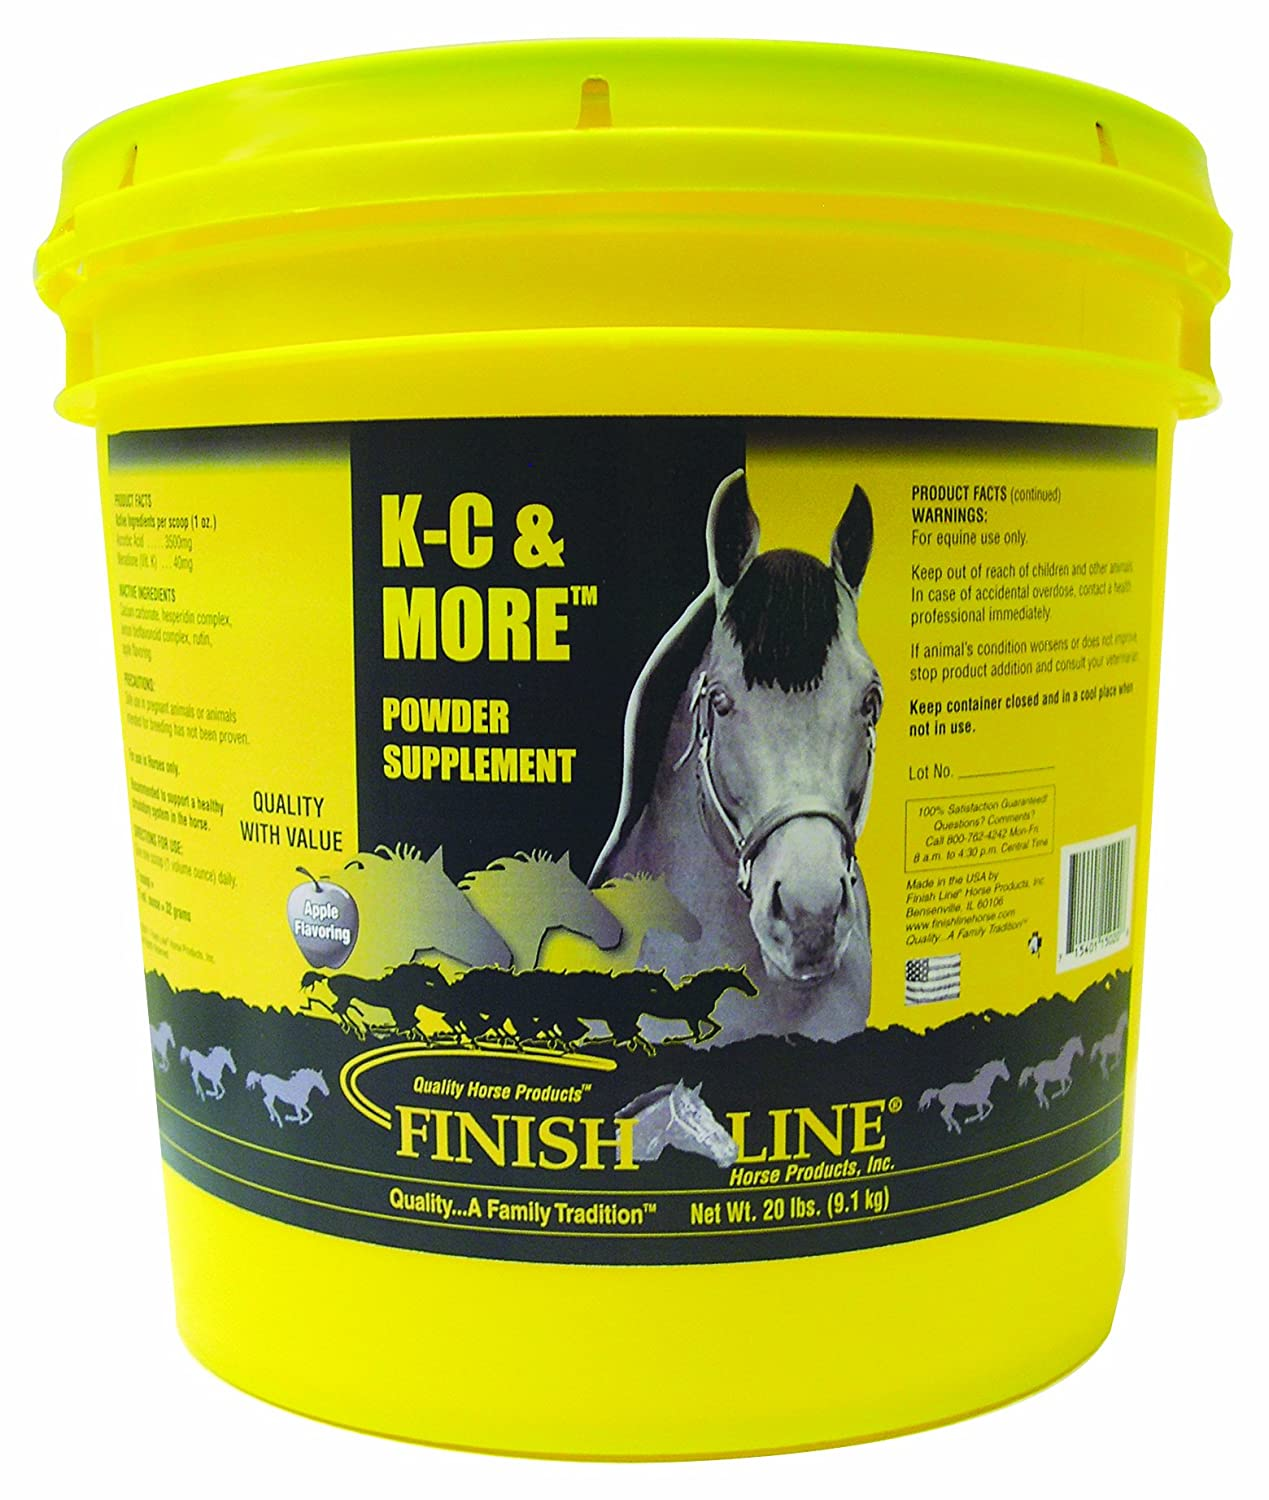 Amazon.com : Finish Line Horse Products K- C & More (4-Pounds) : Horse  Nutritional Supplements And Remedies : Sports & Outdoors